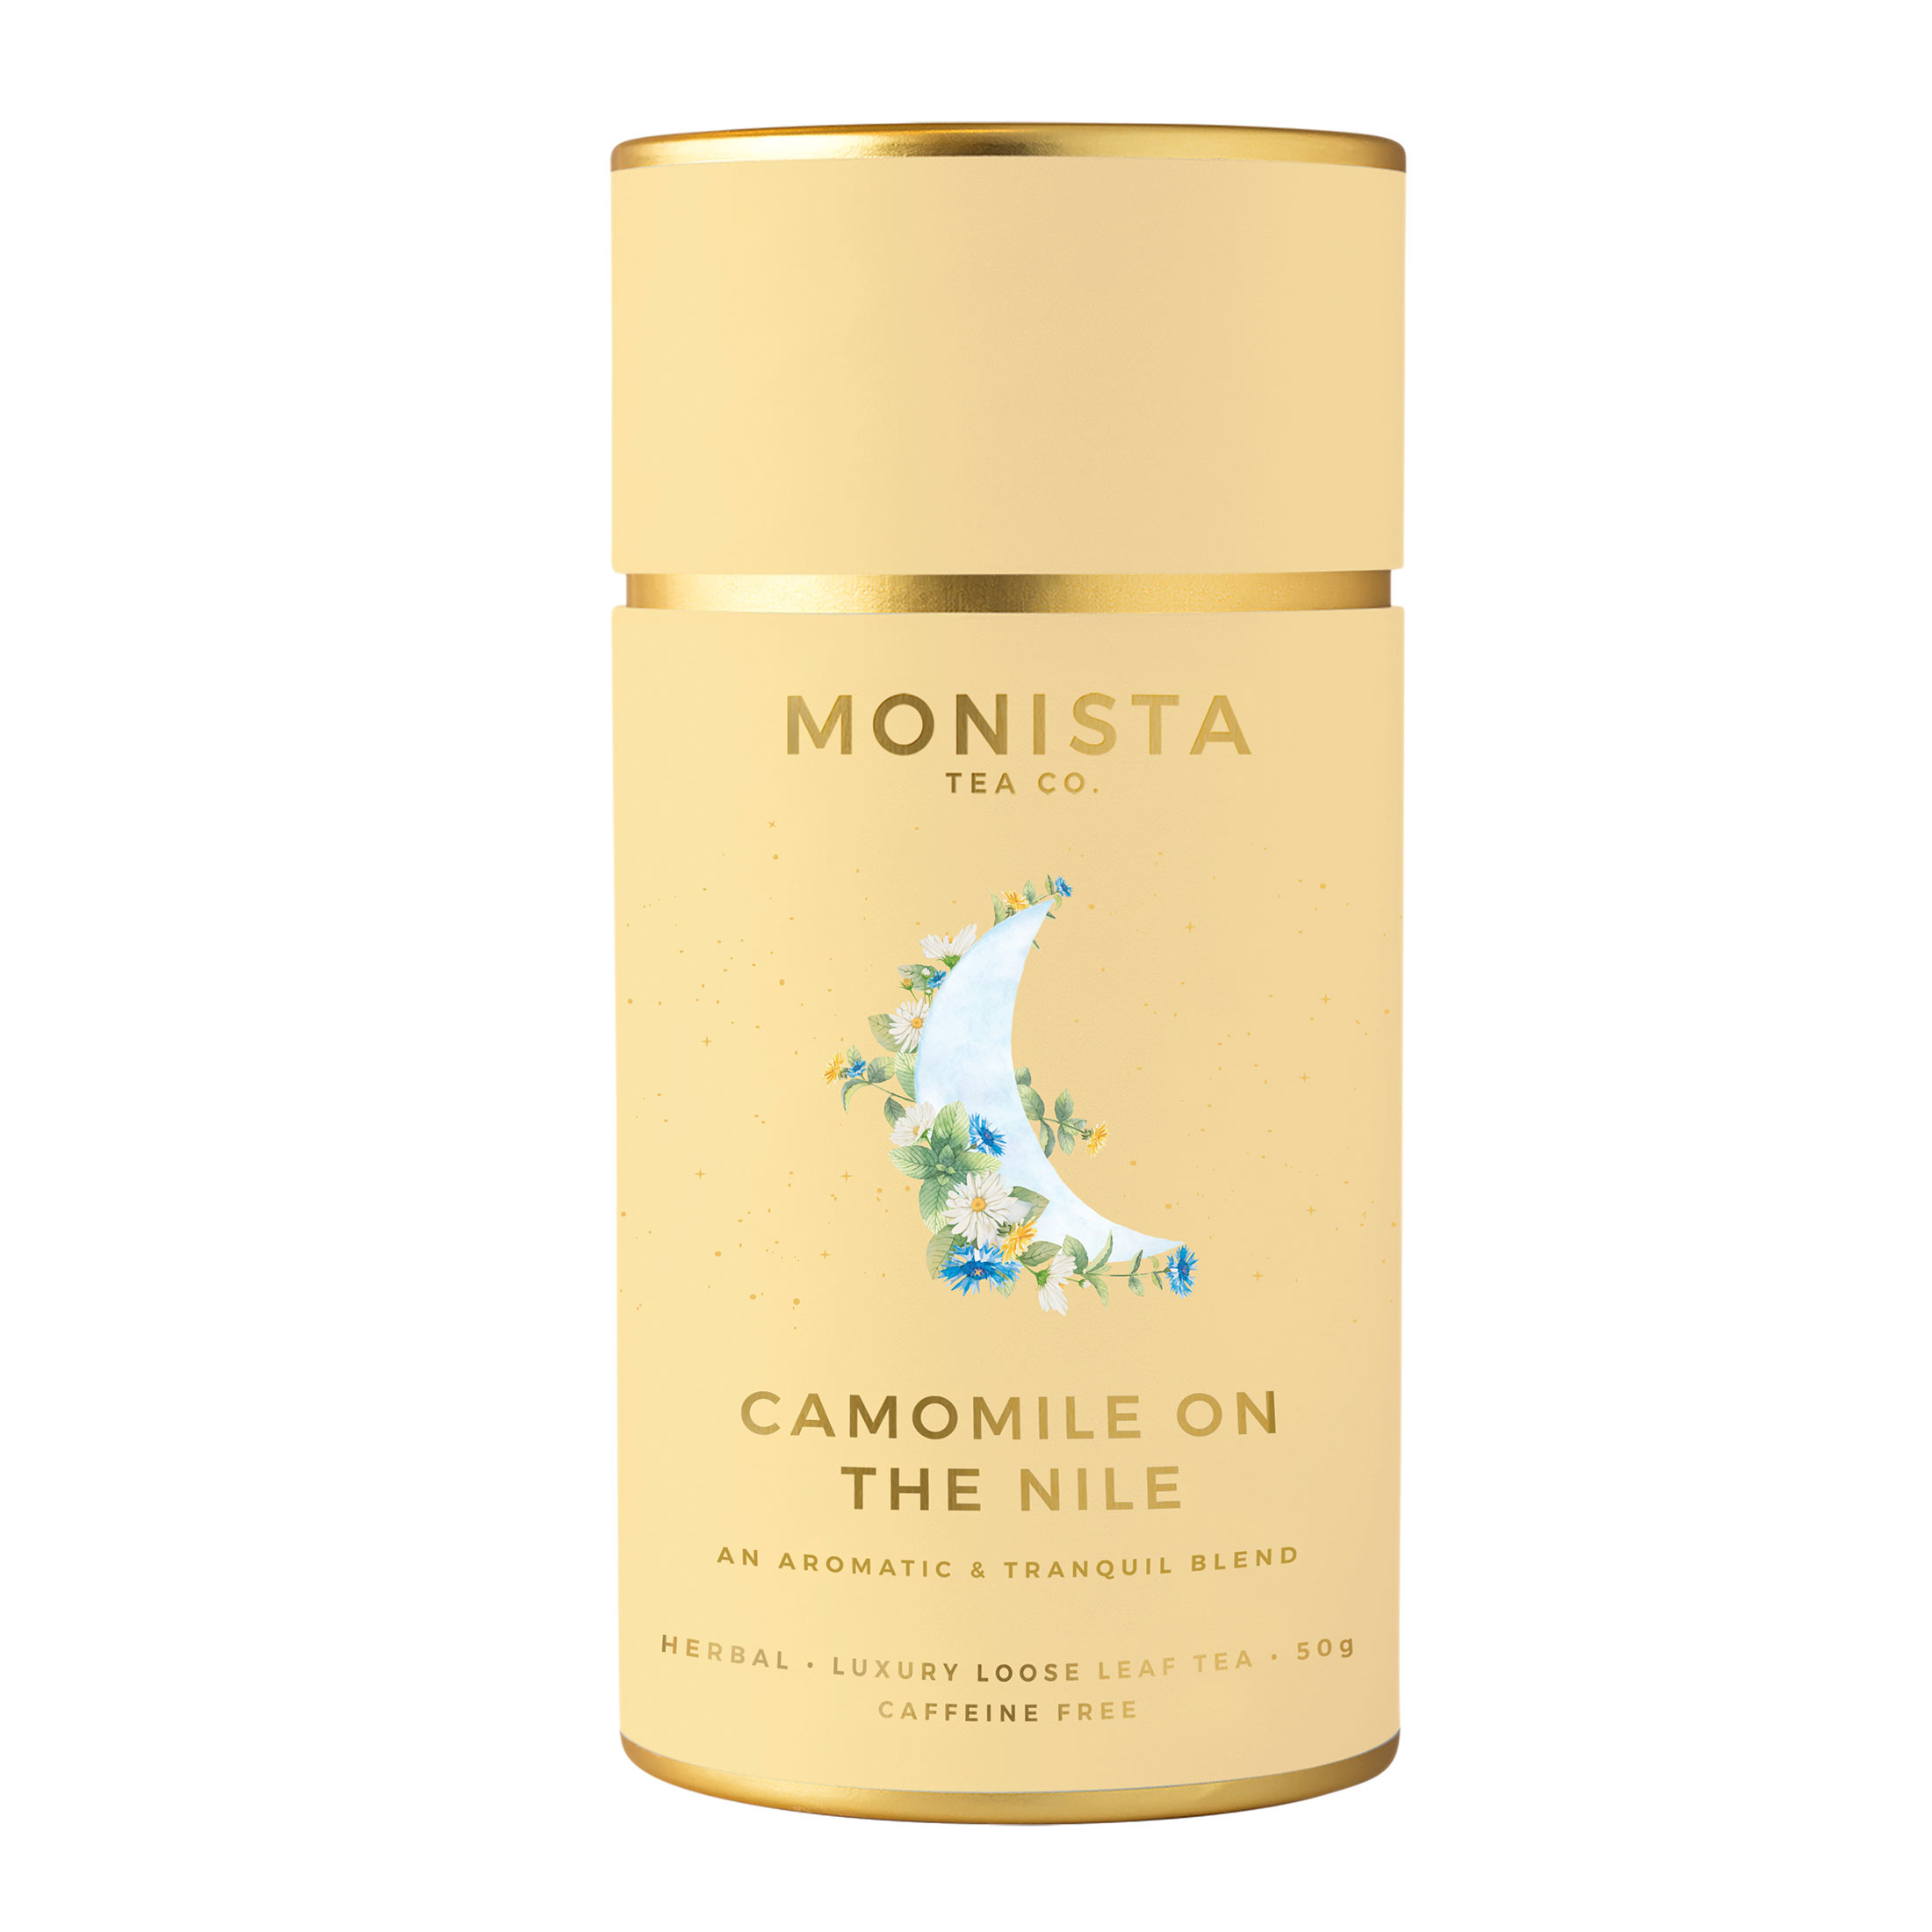 Camomile tea yellow canister